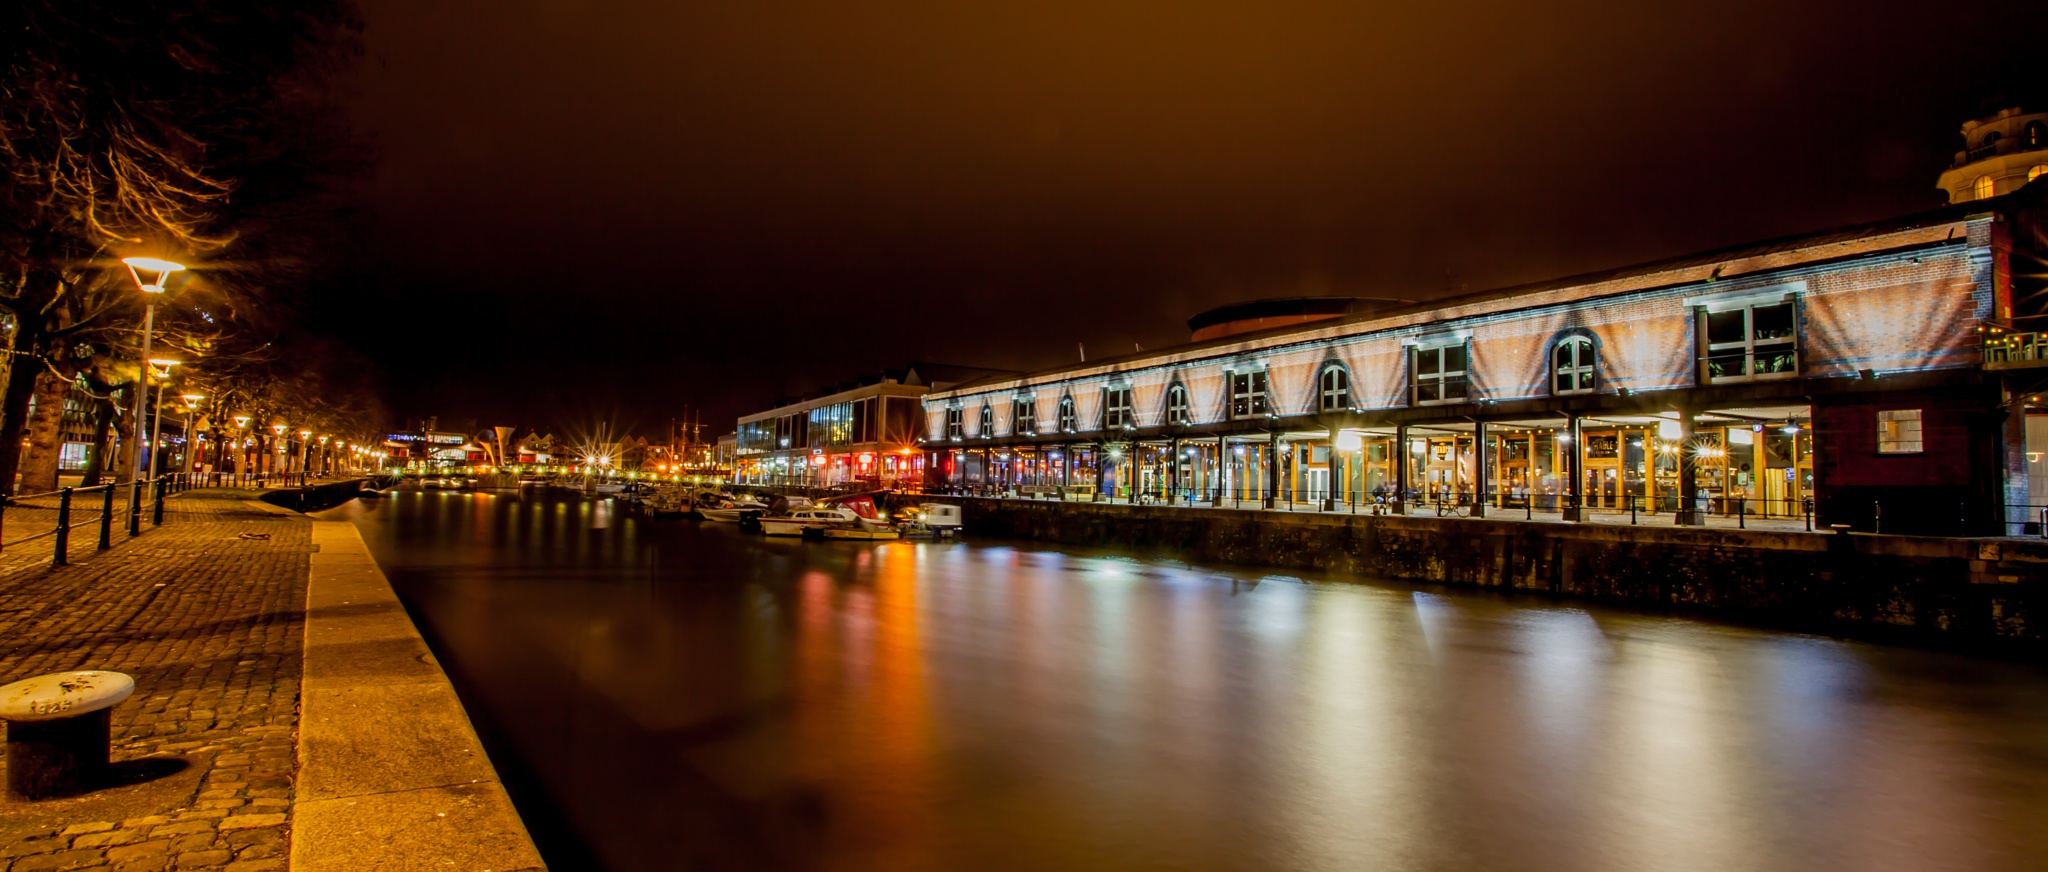 Bristol Waterfront by Russ Summers